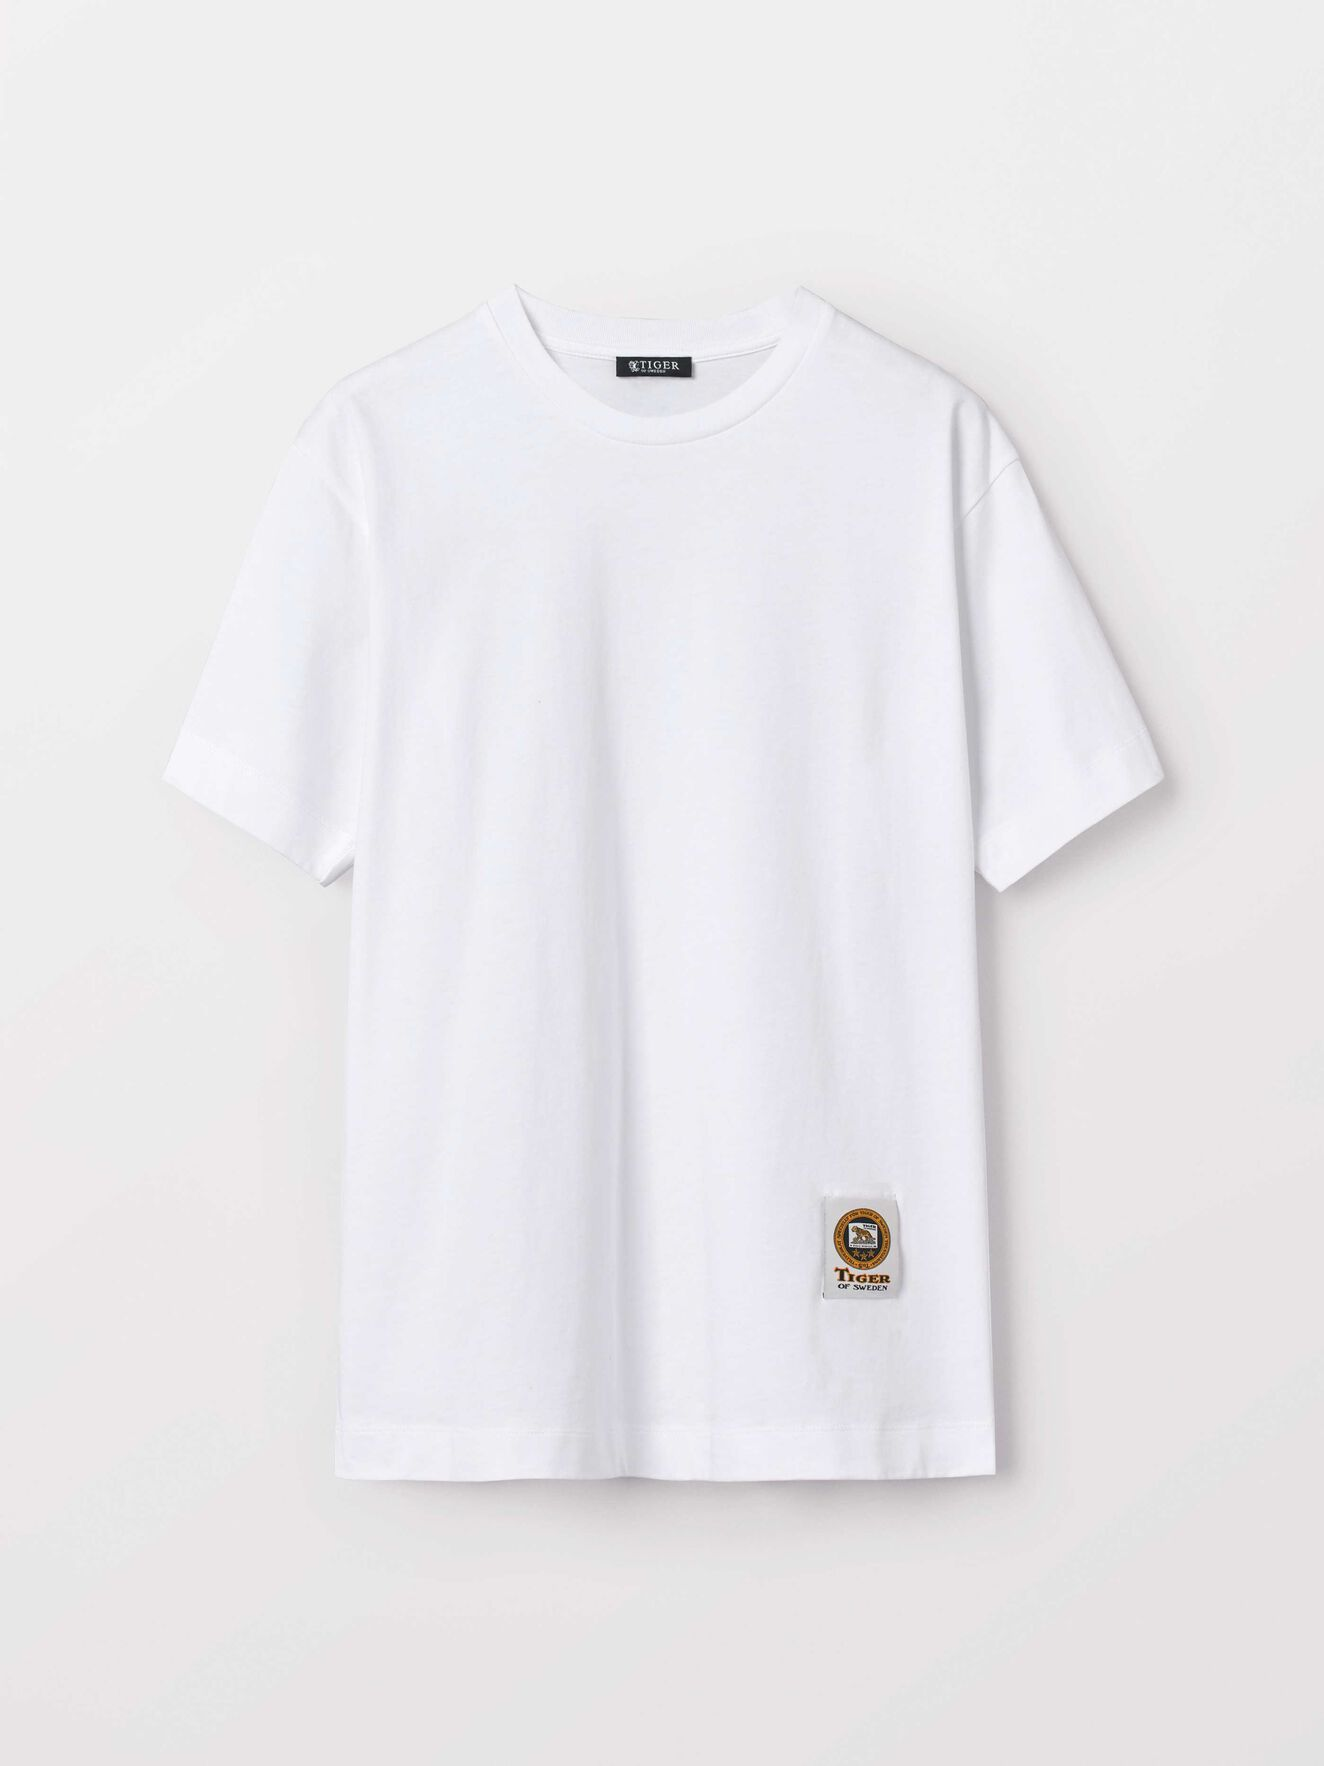 Dellana T-Shirt in Bright White from Tiger of Sweden